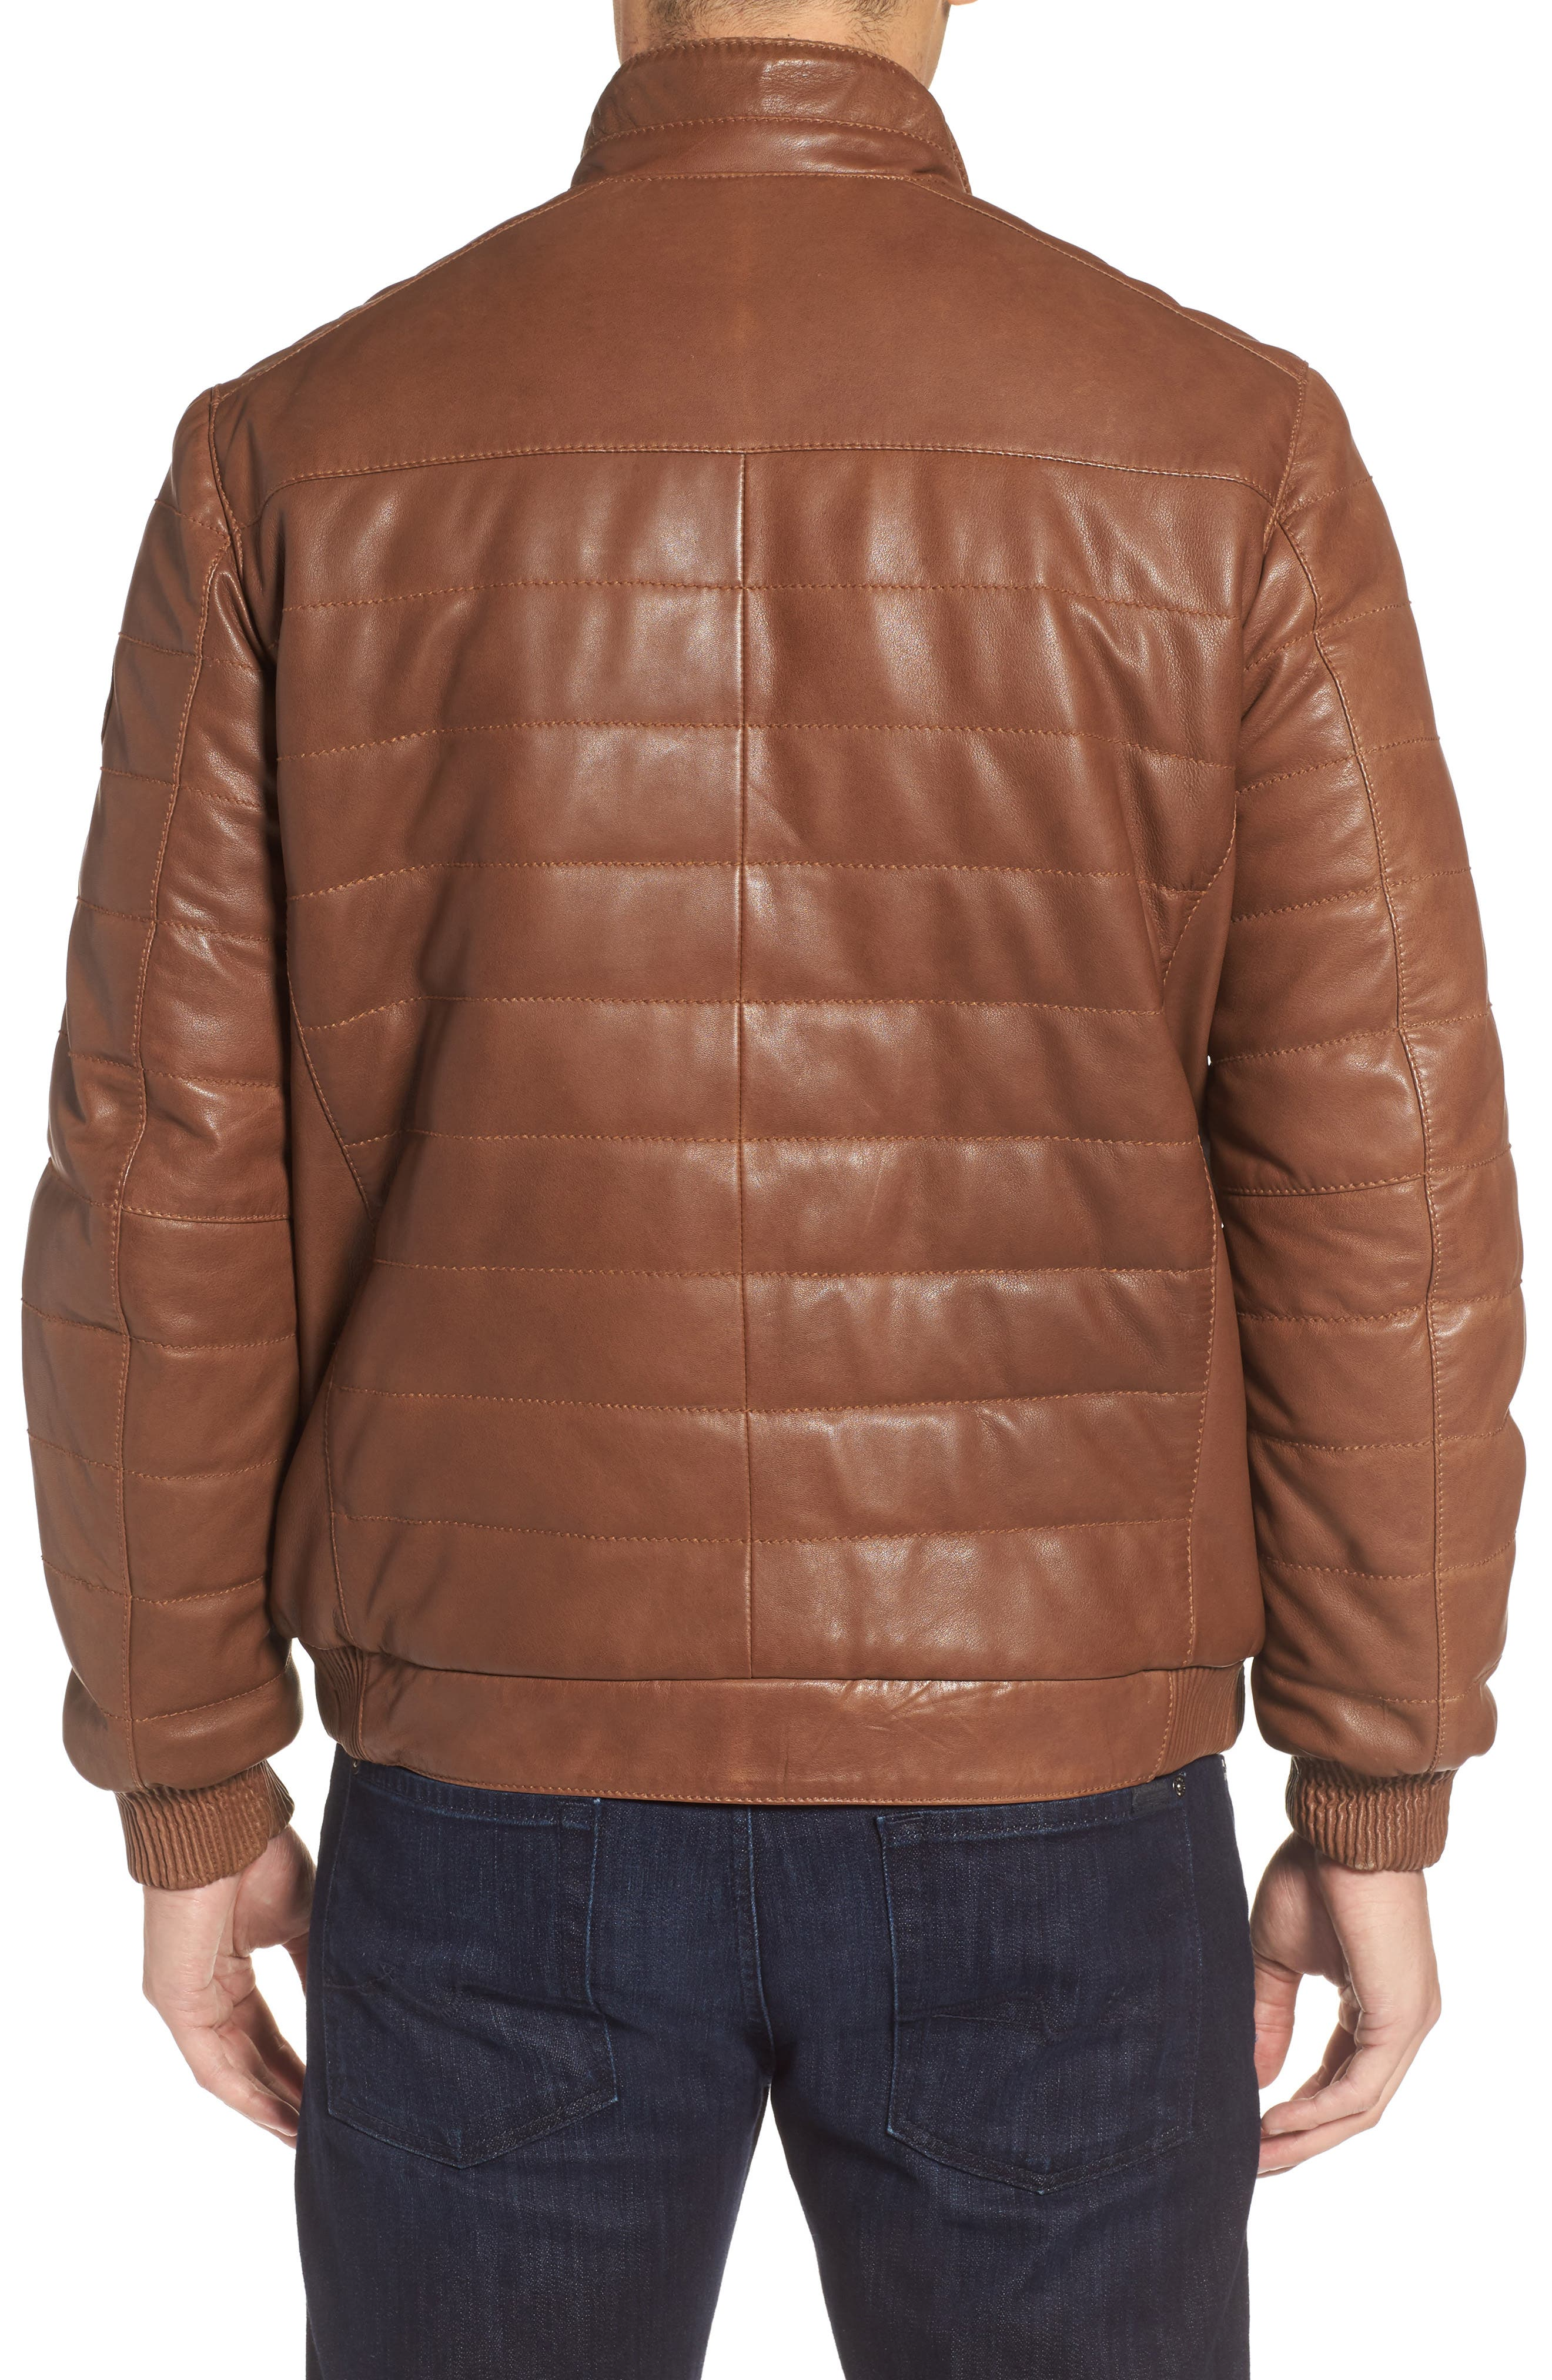 Snowside Leather Bomber Jacket,                             Alternate thumbnail 2, color,                             Brown Enough